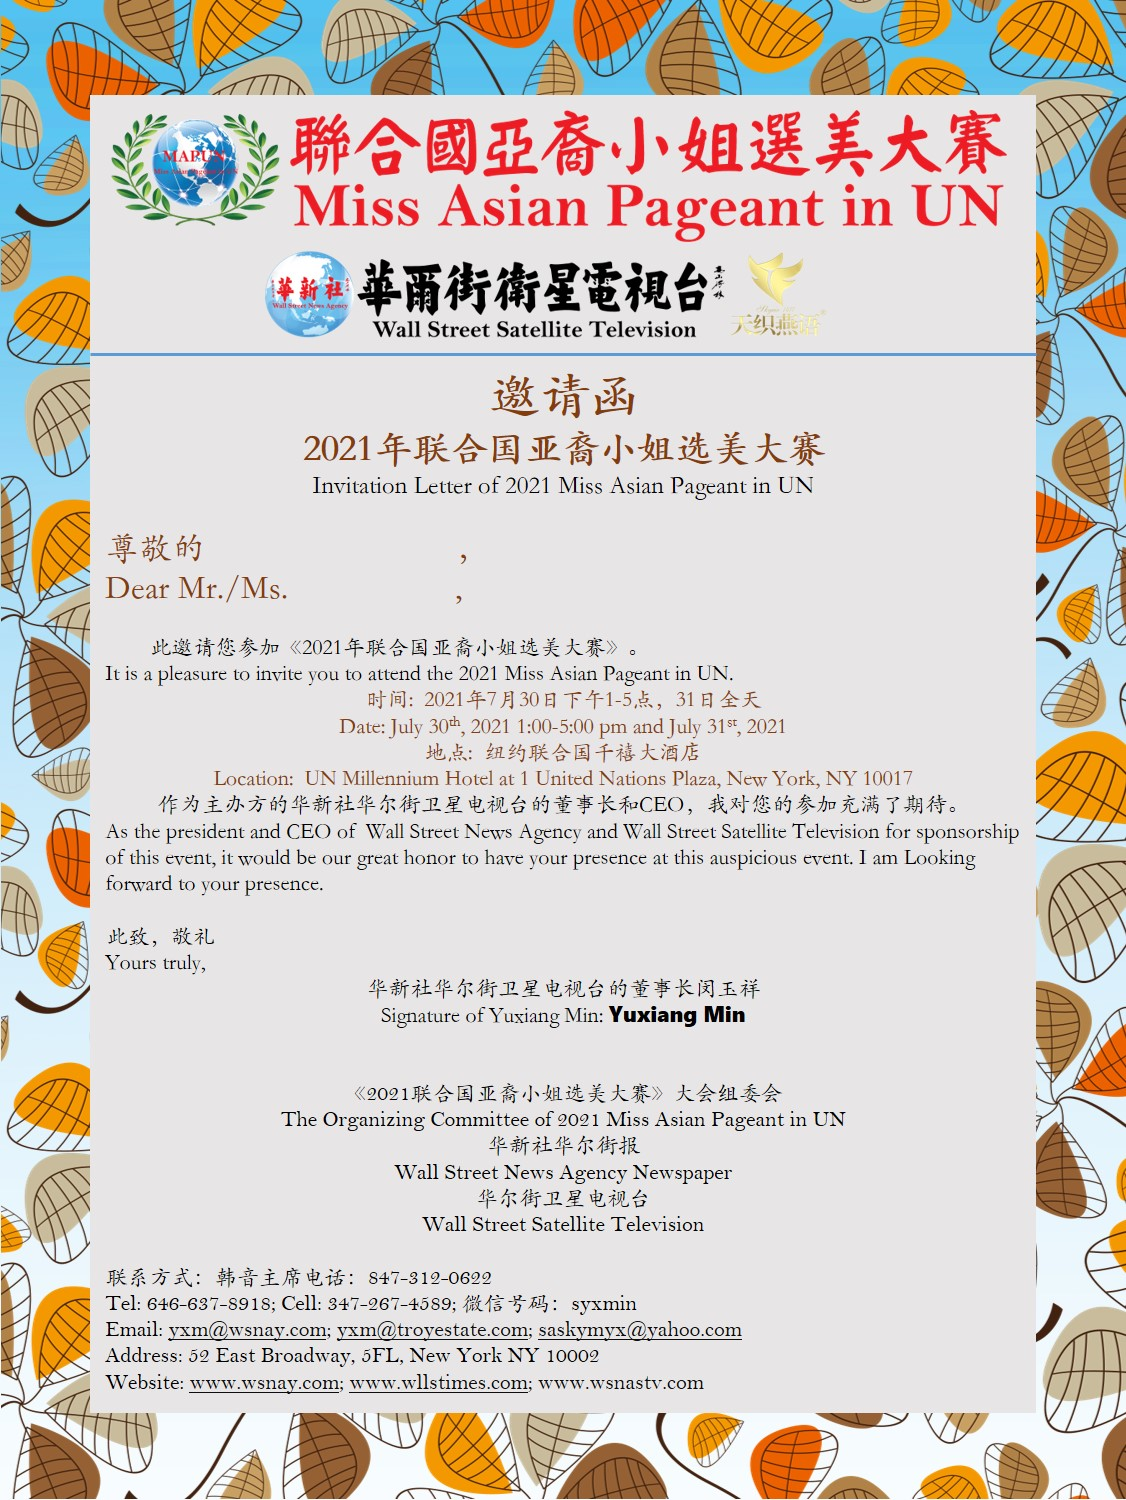 2021 Miss Asian Pageant in UN Invitation Letter 01